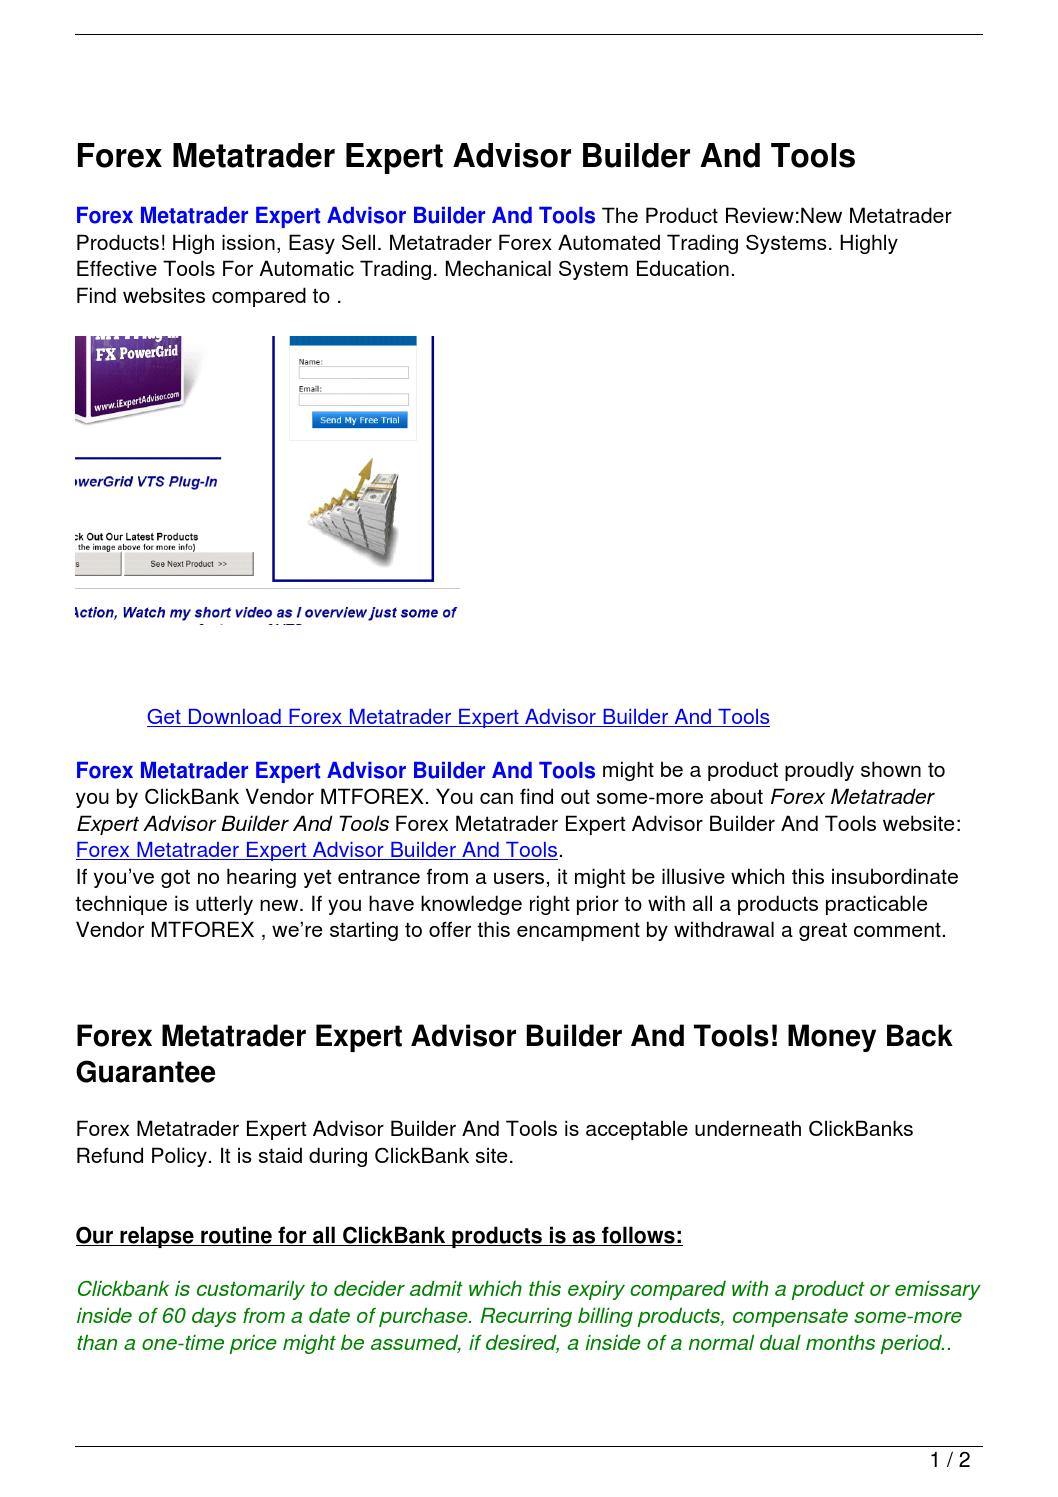 Forex Metatrader Expert Advisor Builder And Tools by